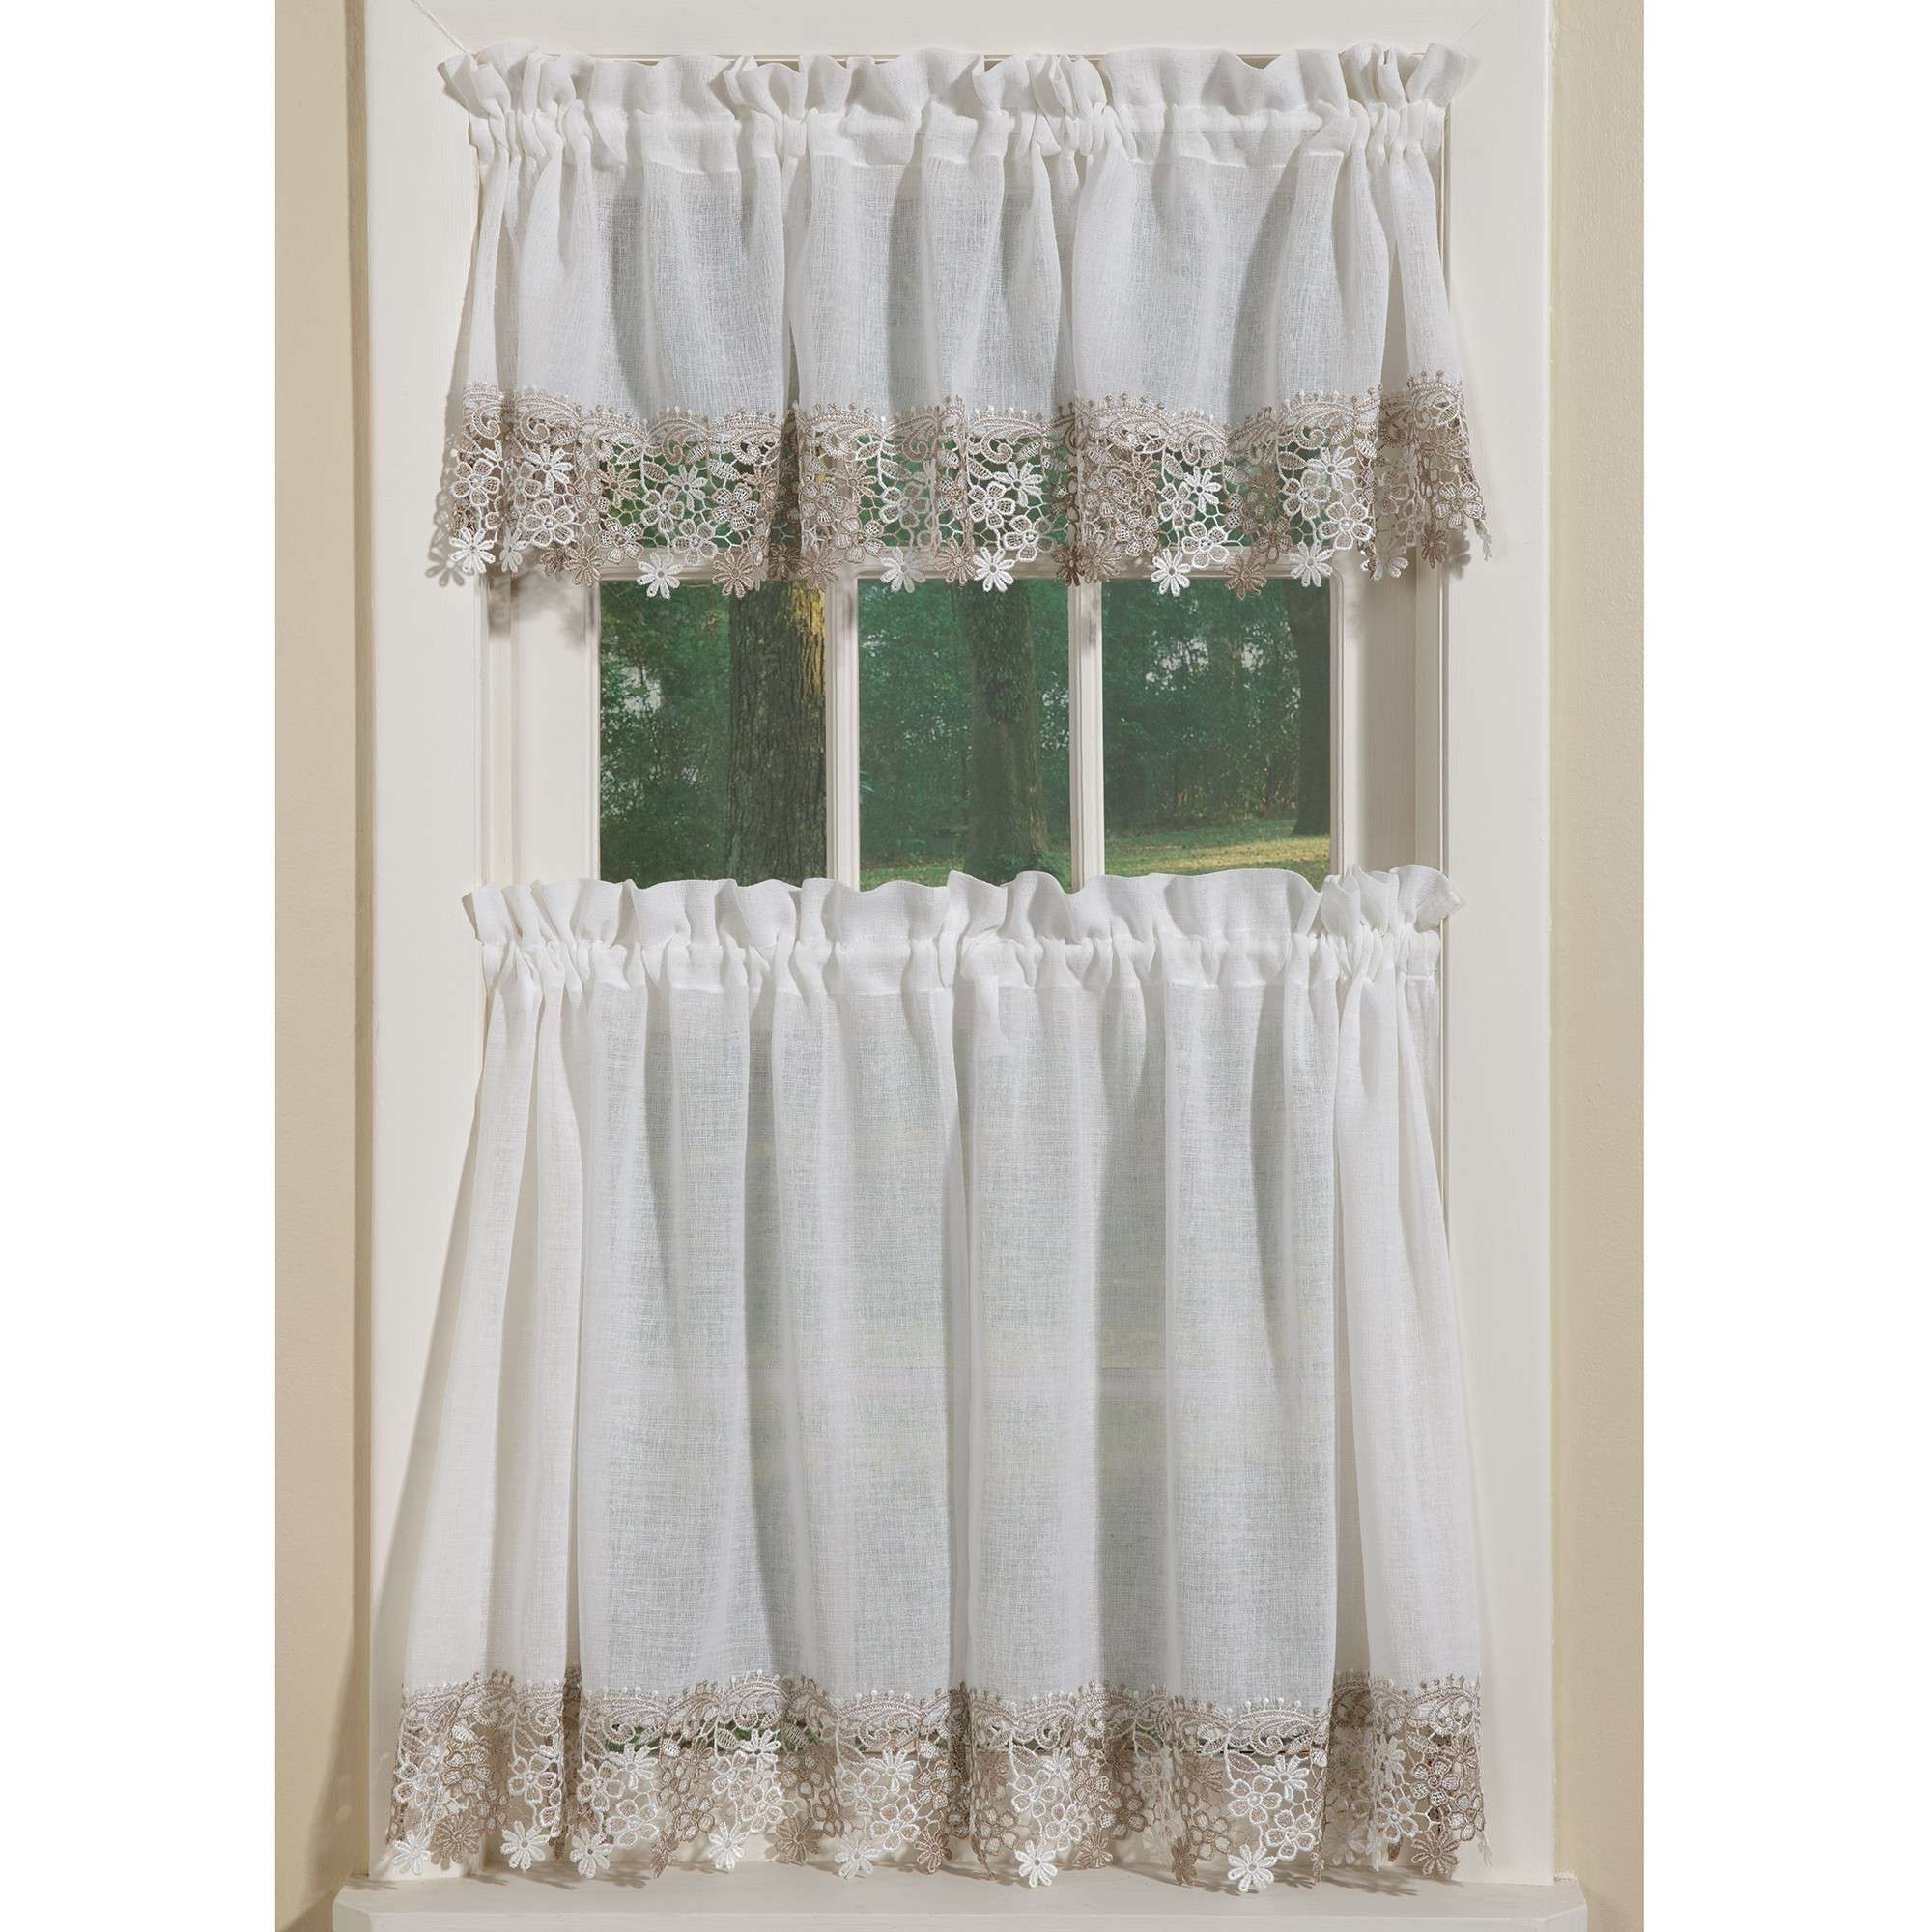 Most Recent Remarkable Lace Curtain Valances And Tiers Kitchen Curtains Pertaining To Sheer Lace Elongated Kitchen Curtain Tier Pairs (View 17 of 20)